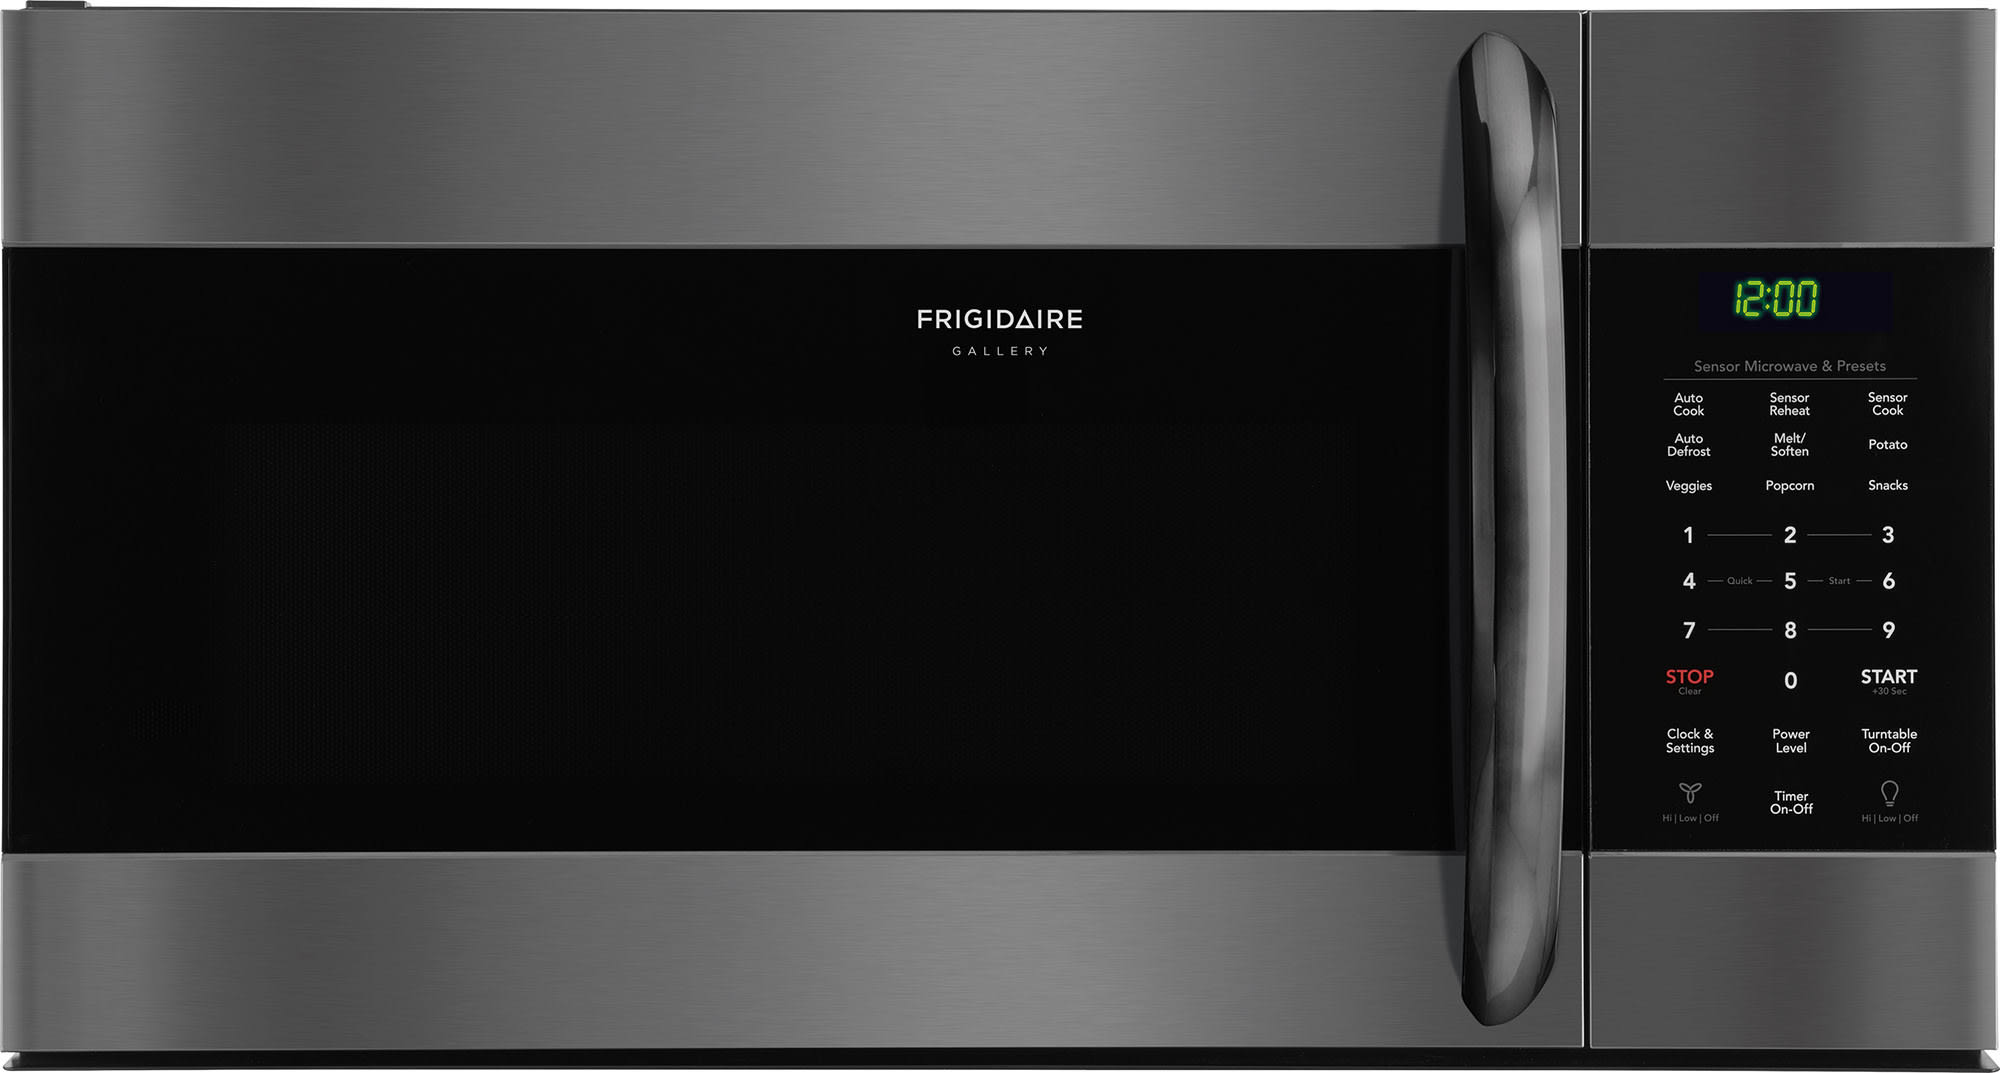 Frigidaire Fgmv176ntd 30 Inch Over The Range Microwave